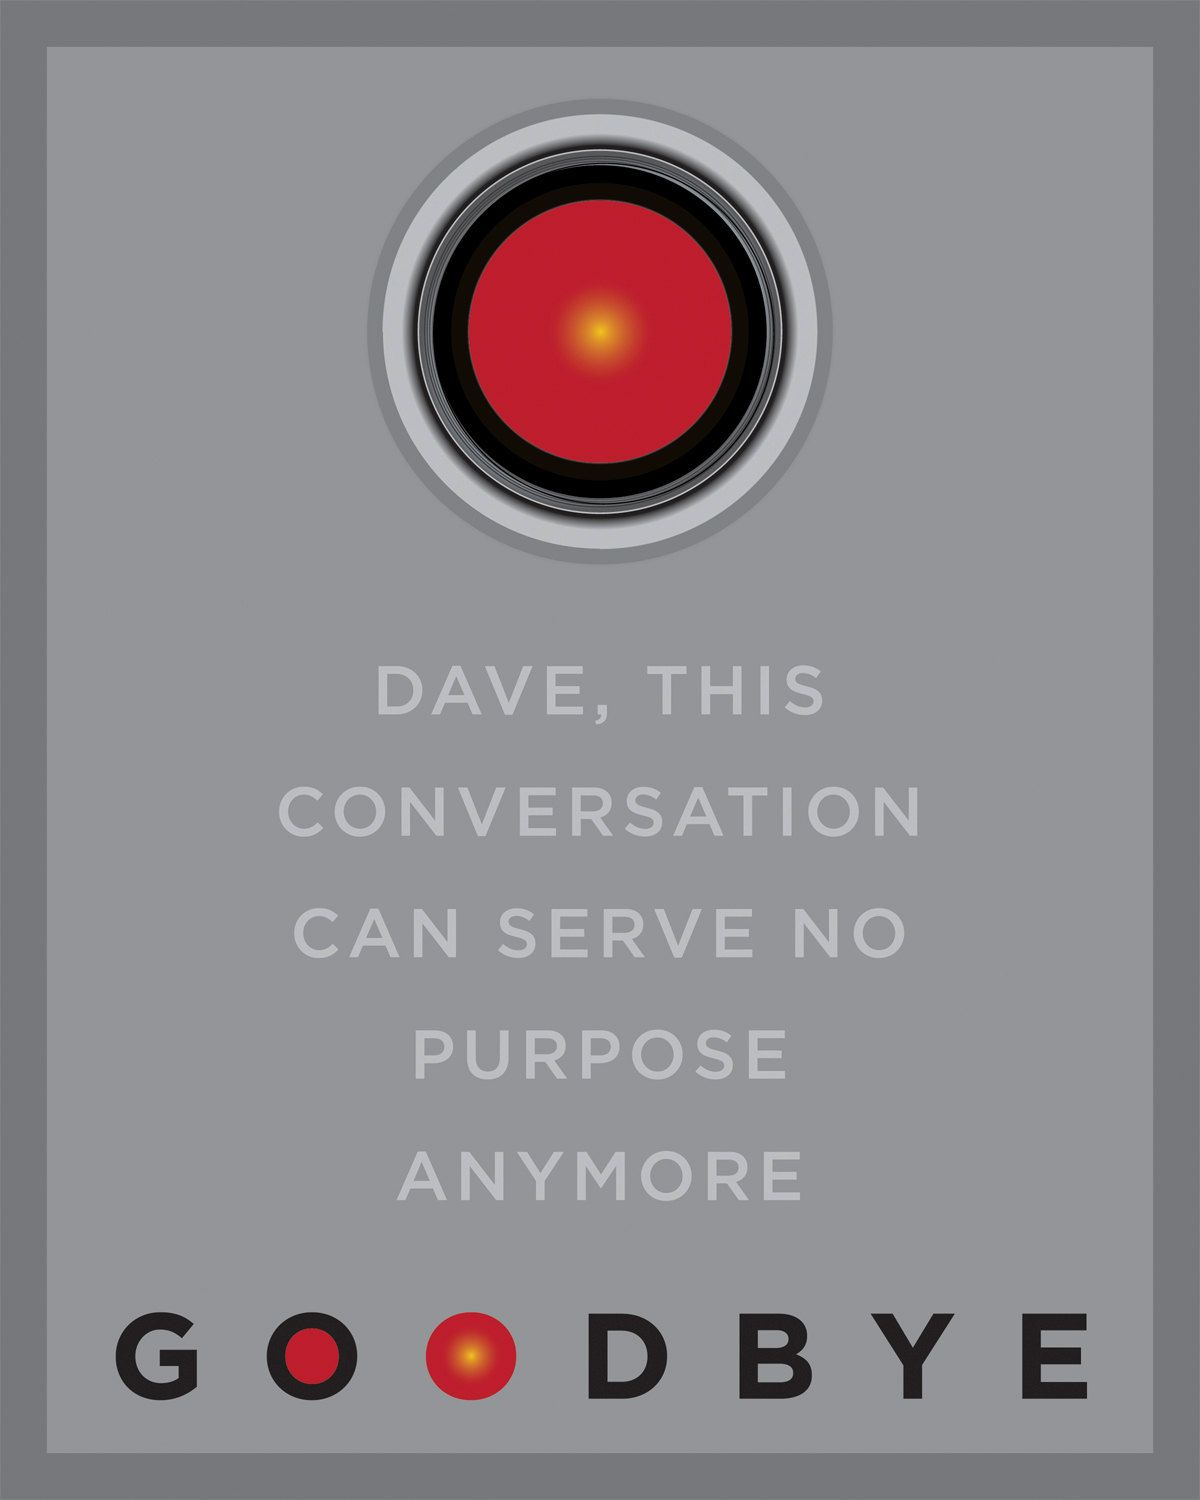 Hal 9000 Quotes HAL 9000, 2001 Space Odyssey, Goodbye Quote, 8x10 inch Print  Hal 9000 Quotes